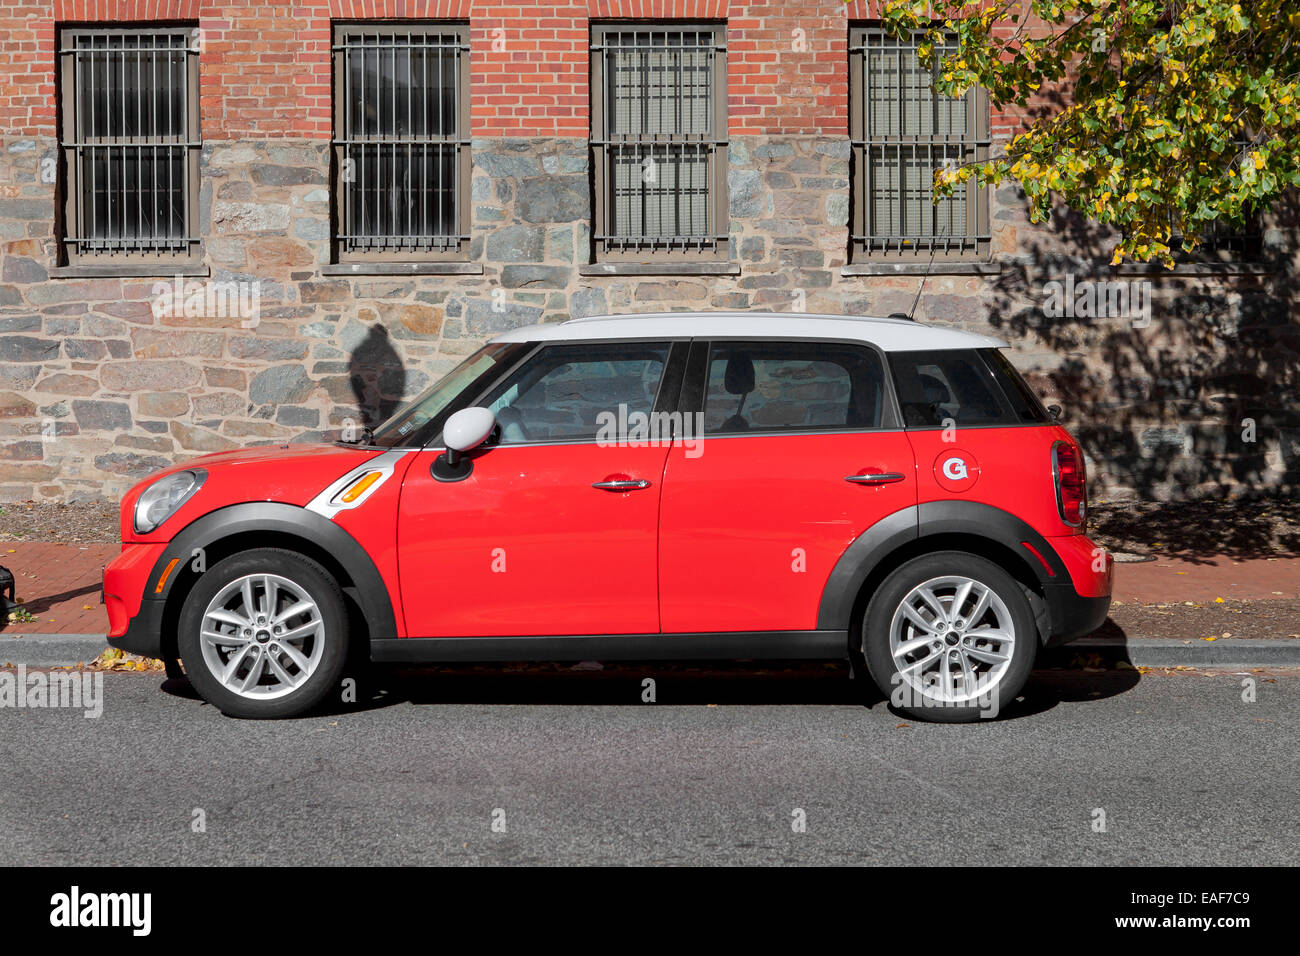 Mini Cooper Usa >> Mini Cooper Paceman 4 Door Parked Usa Stock Photo 75323145 Alamy